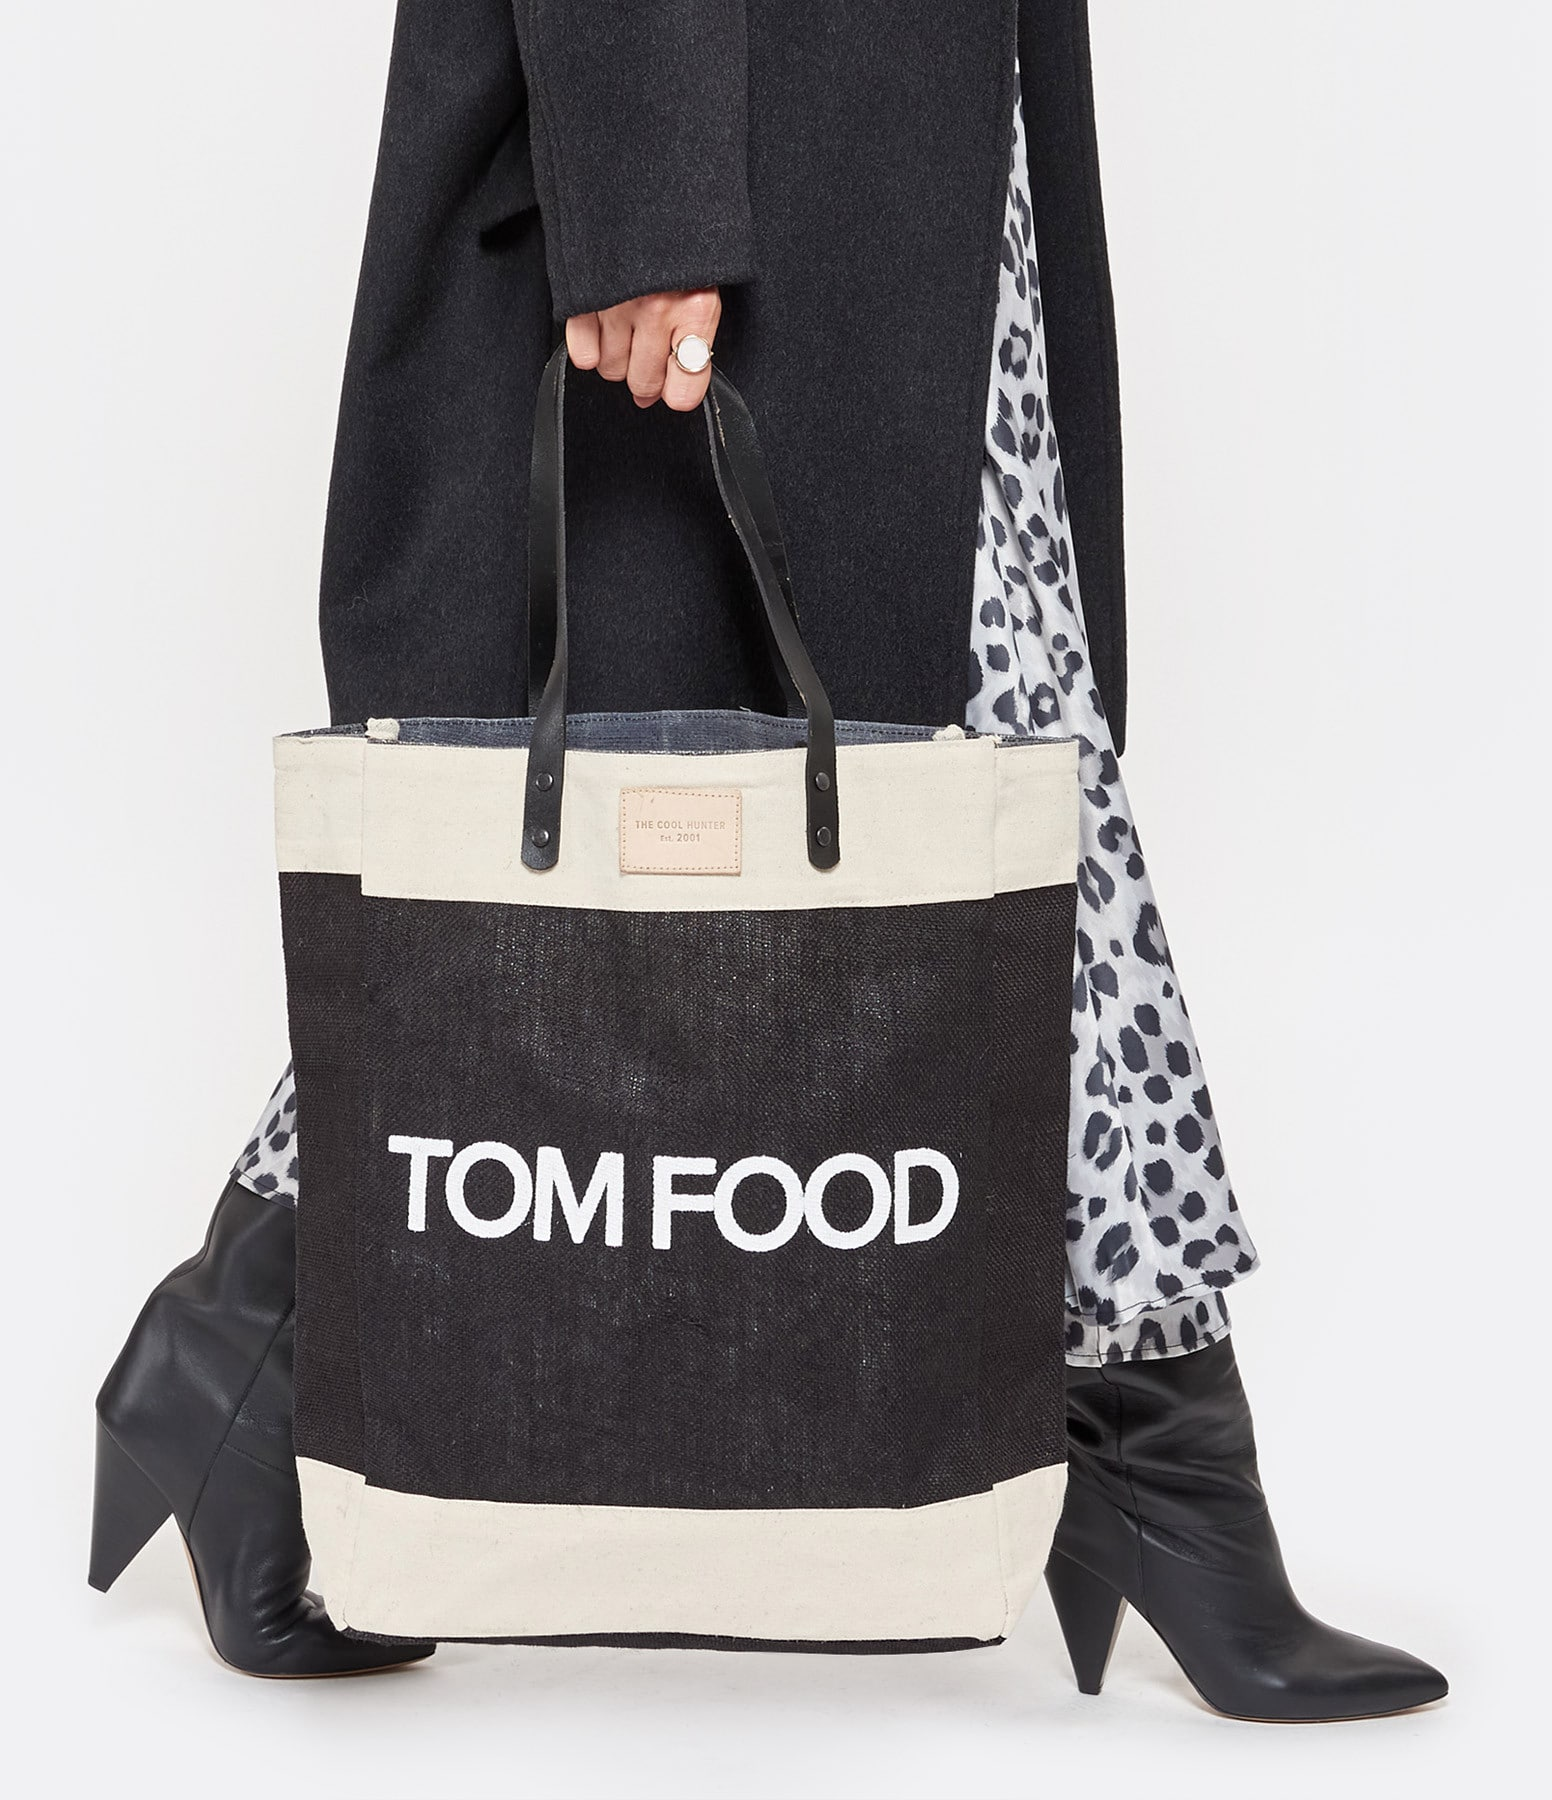 THE COOL HUNTER - Cabas Toile de Jute TOM FOOD